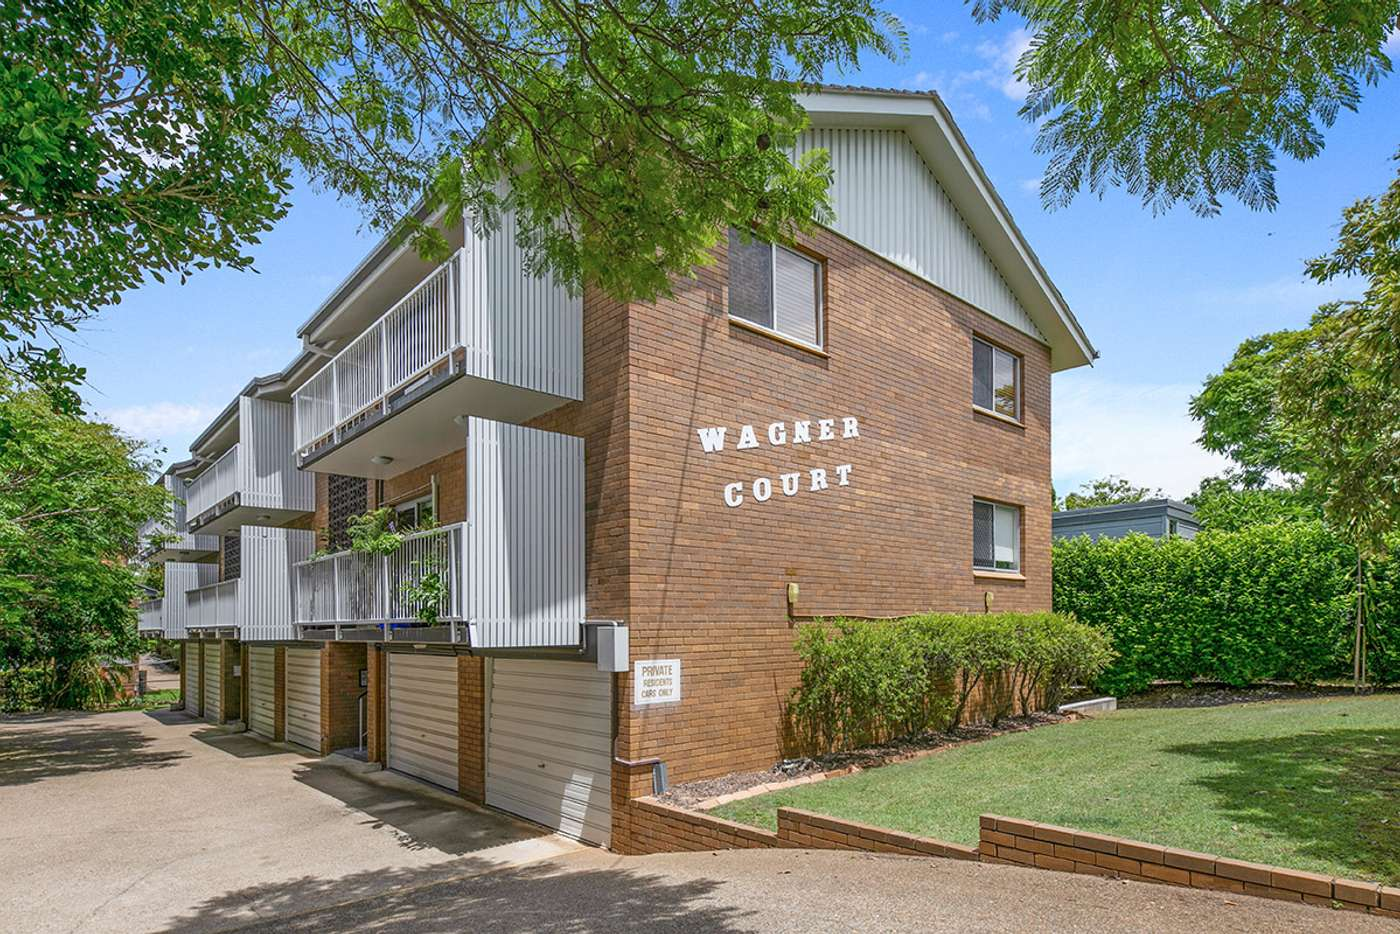 Main view of Homely unit listing, 4/45 Wagner Road, Clayfield QLD 4011